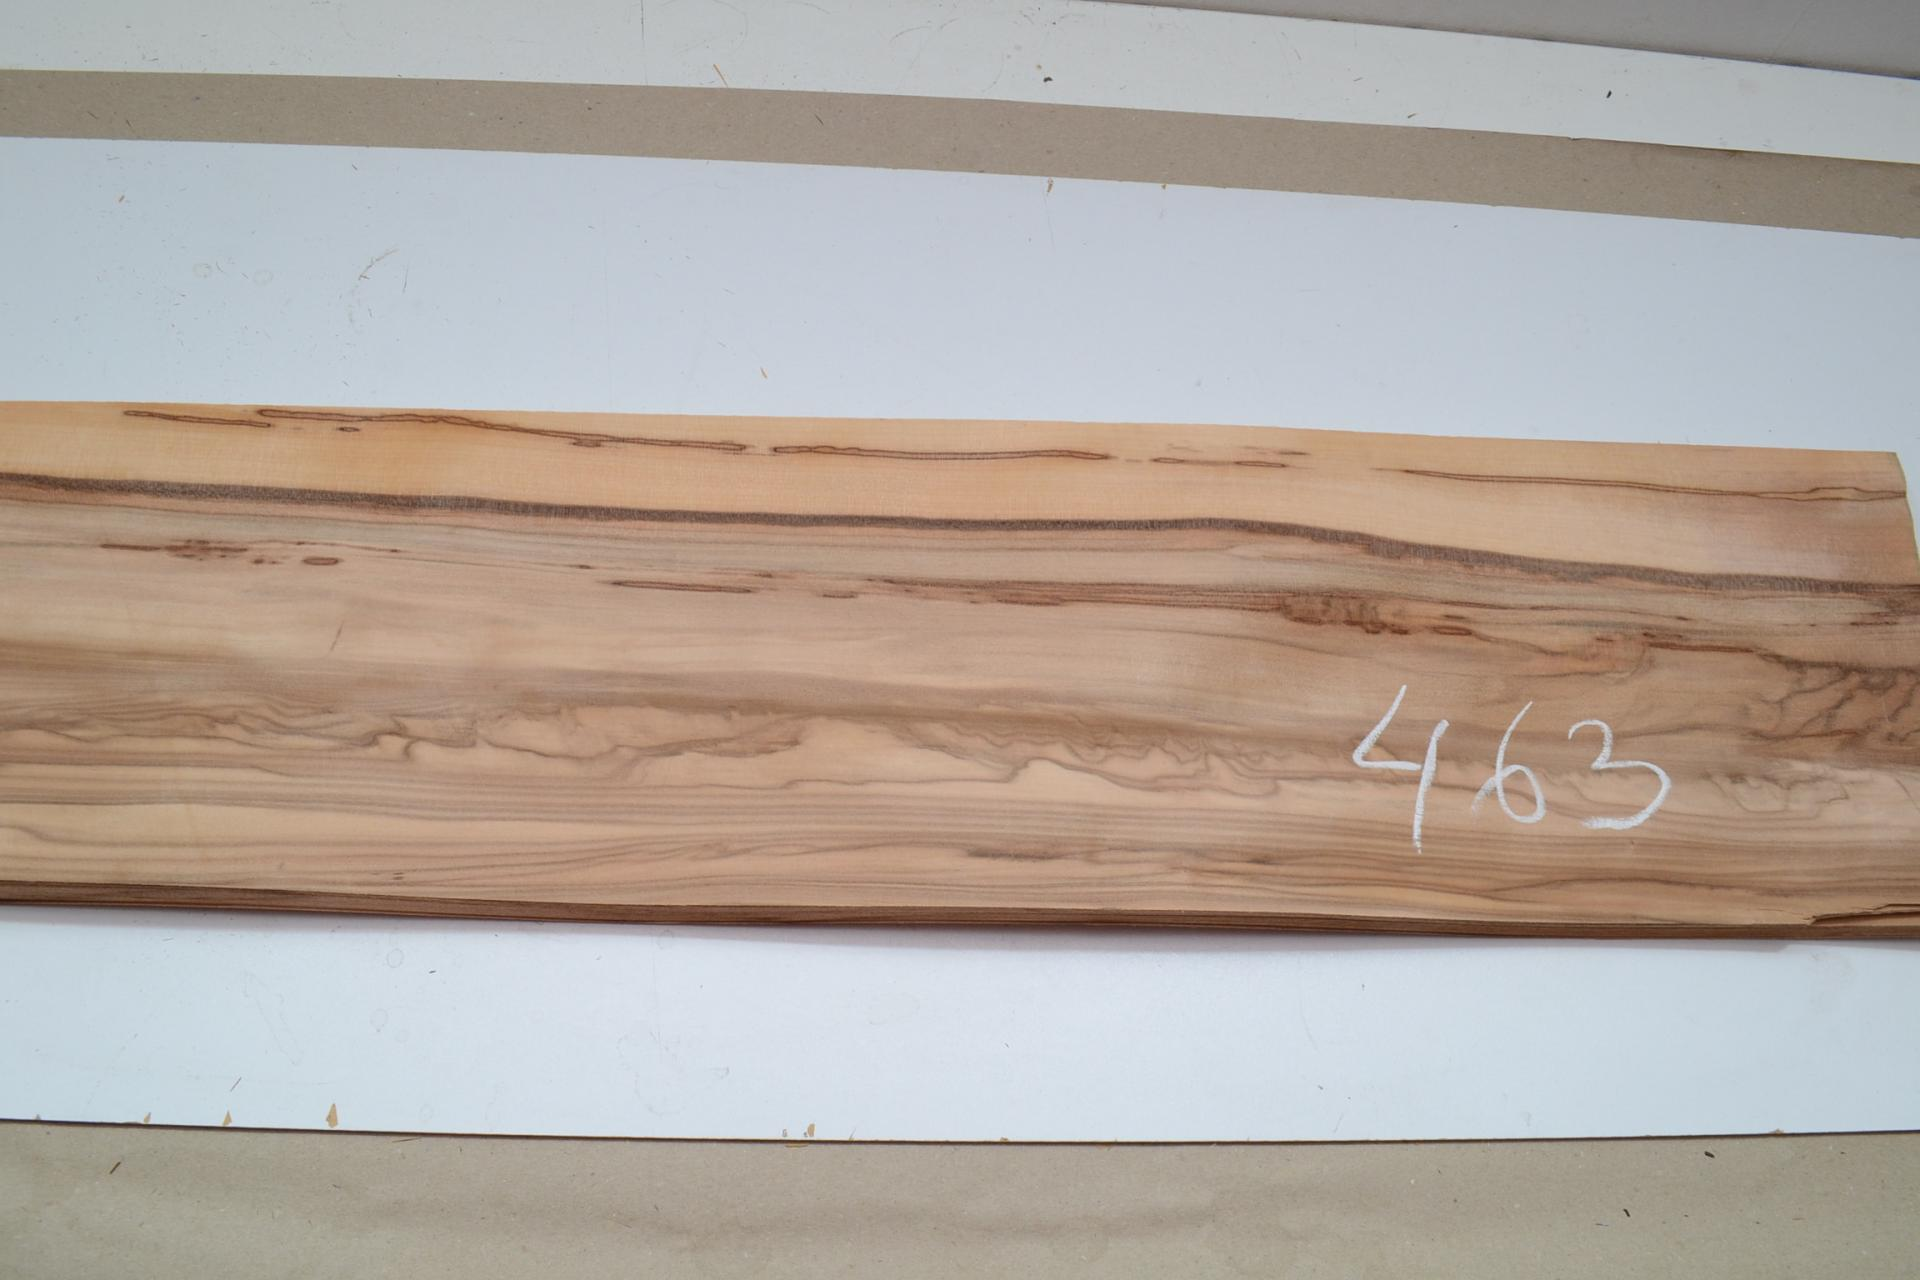 463 placage marqueterie red gum 1